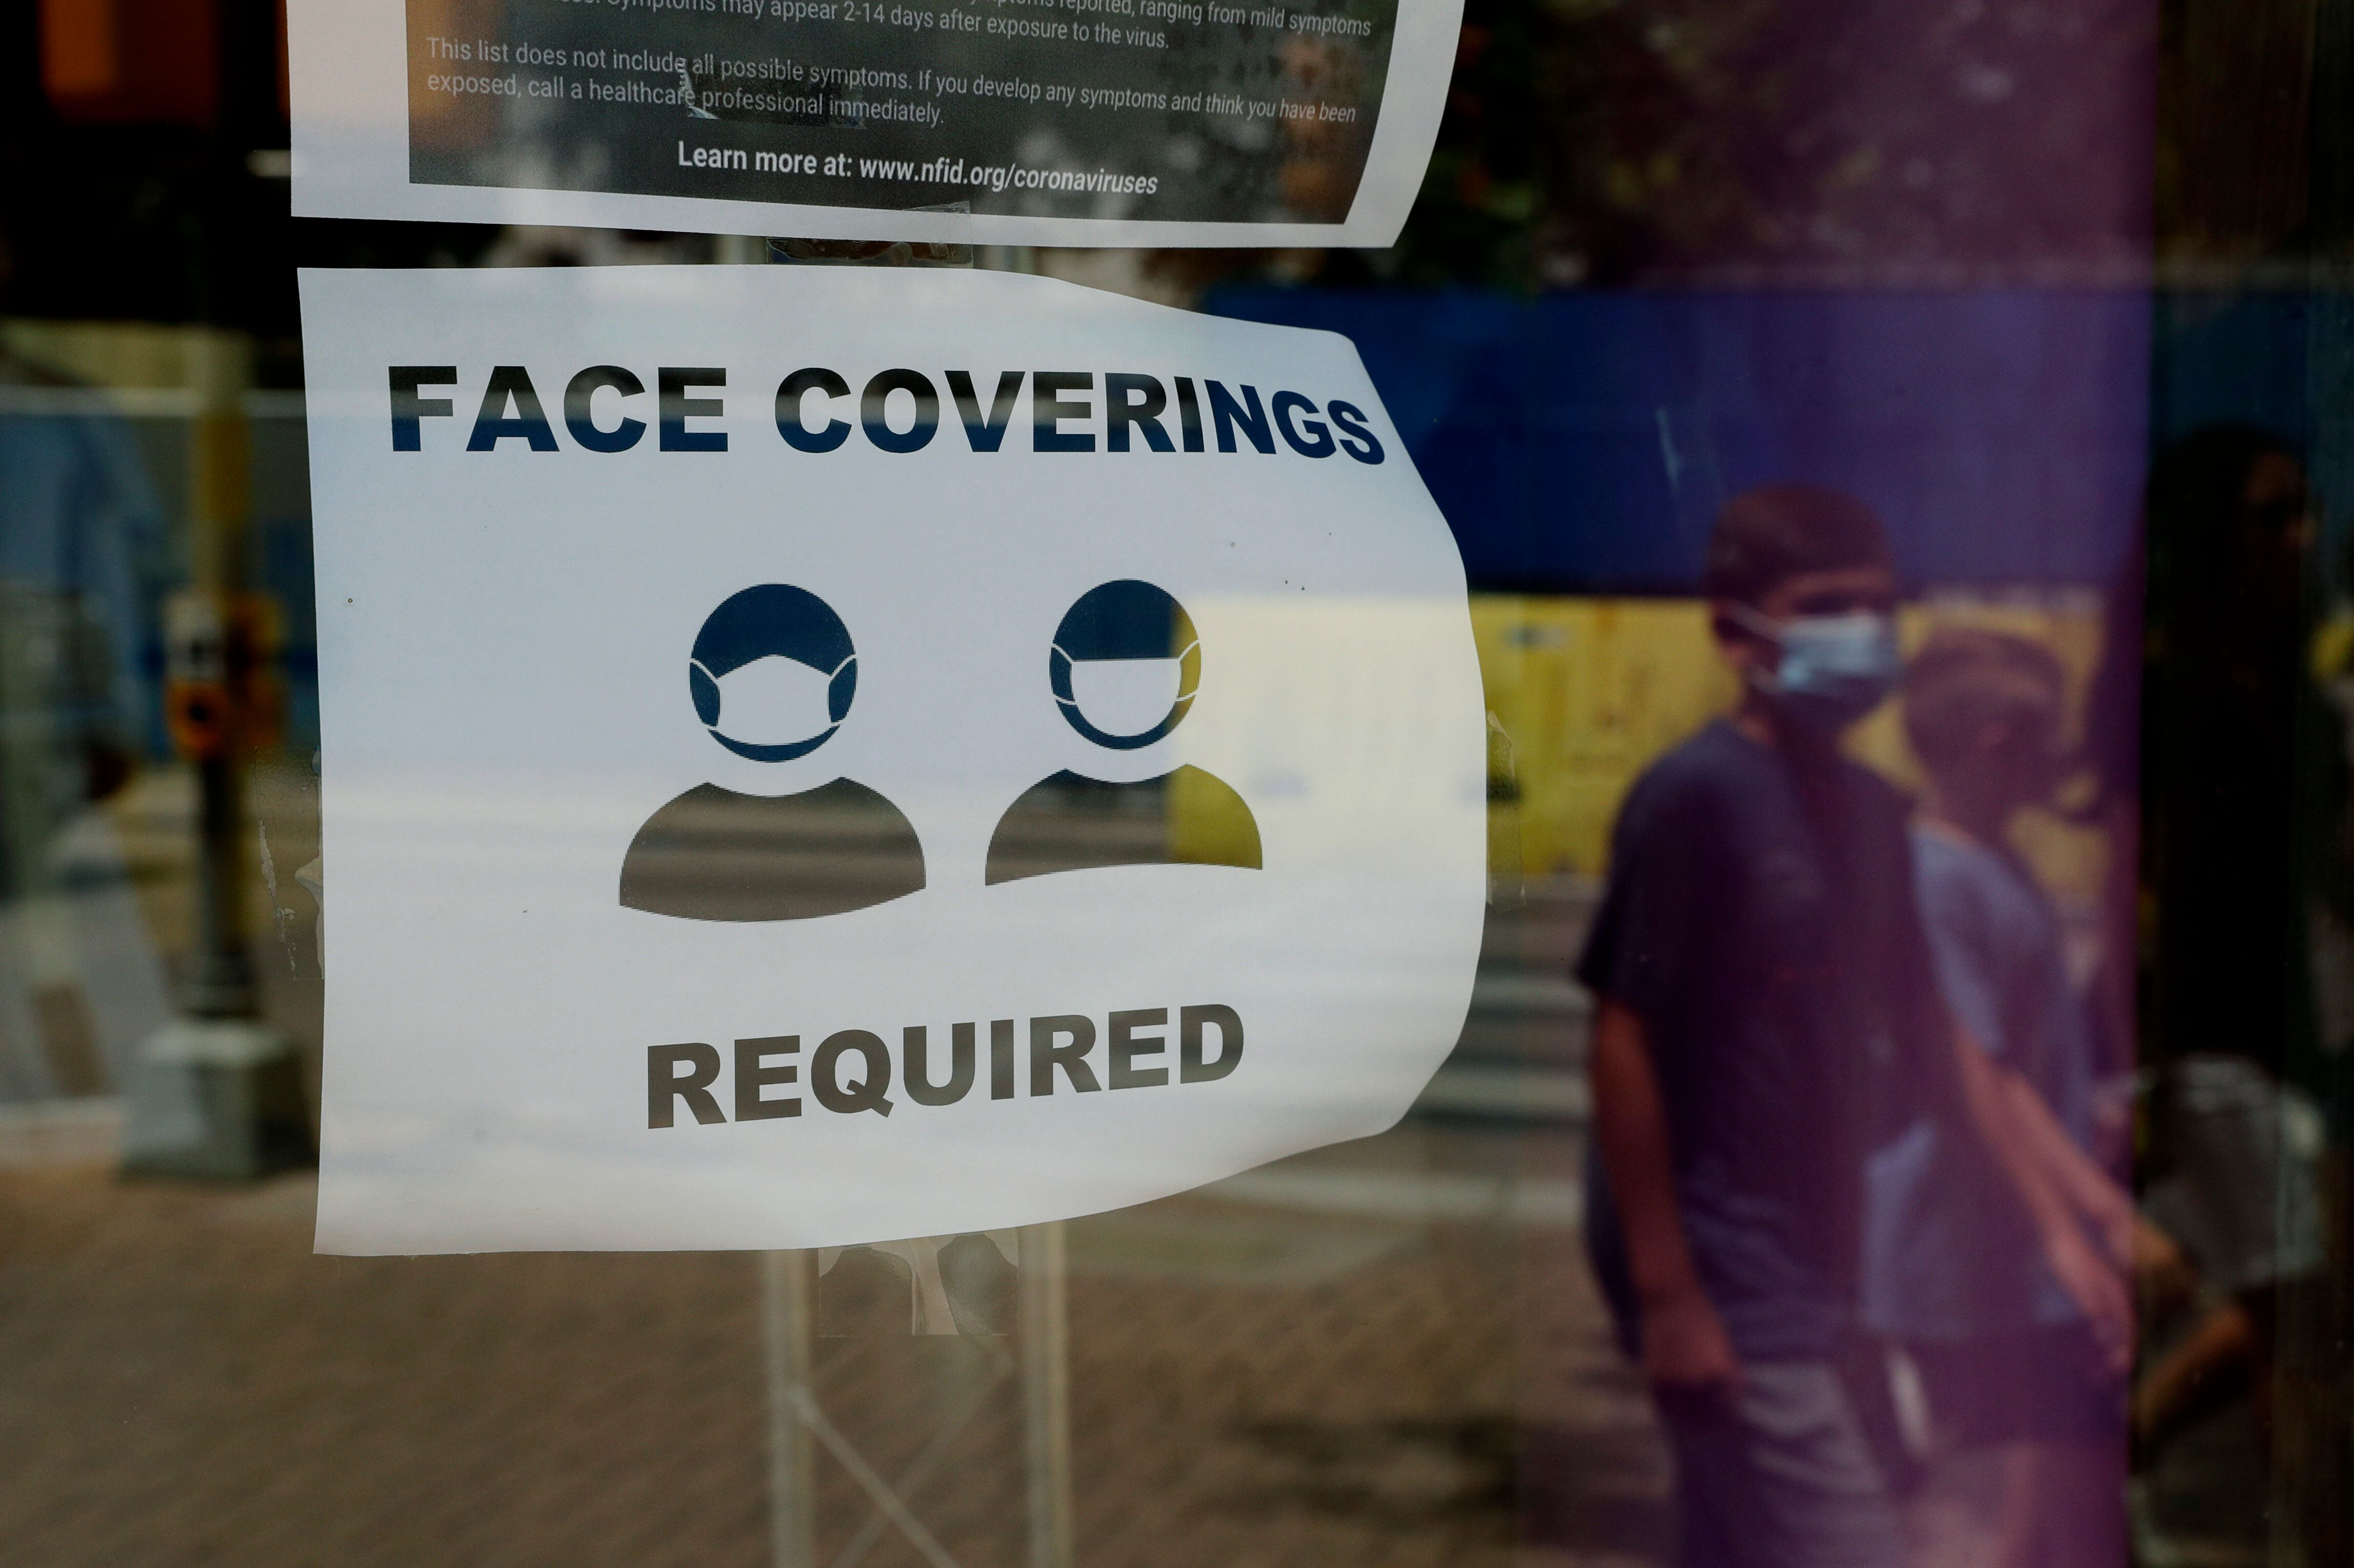 A visitor wearing a mask to protect against the spread of COVID-19 passes a sign requiring masks in San Antonio, Texas.